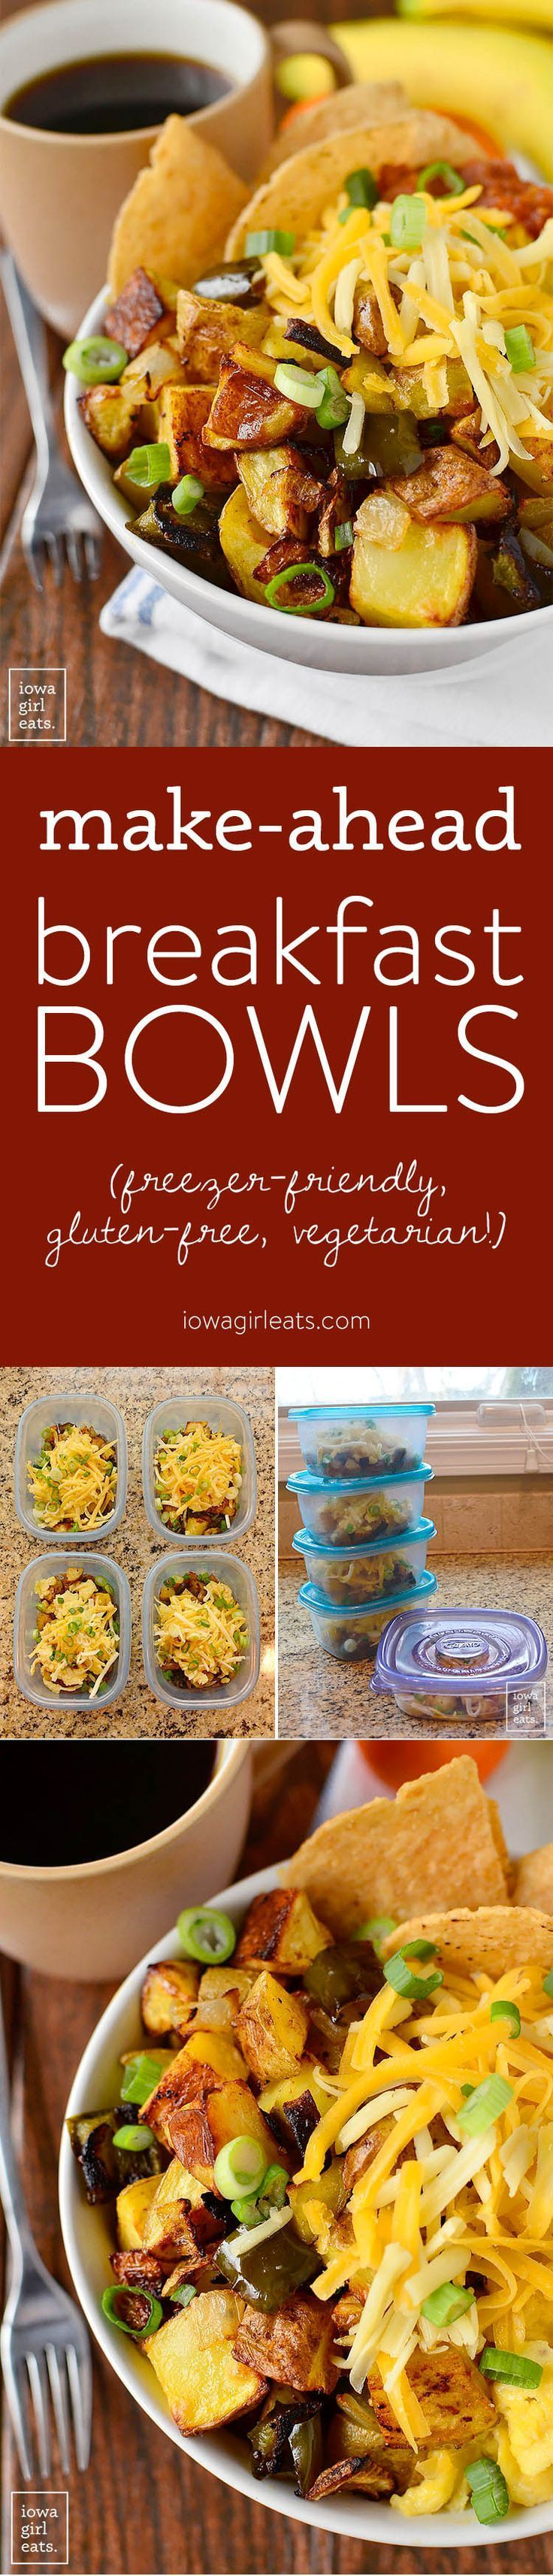 Make-Ahead Breakfast Bowls are full of filling, hearty ingredients to power you through your morning. This vegetarian and gluten-free recipe is also freezer-friendly!